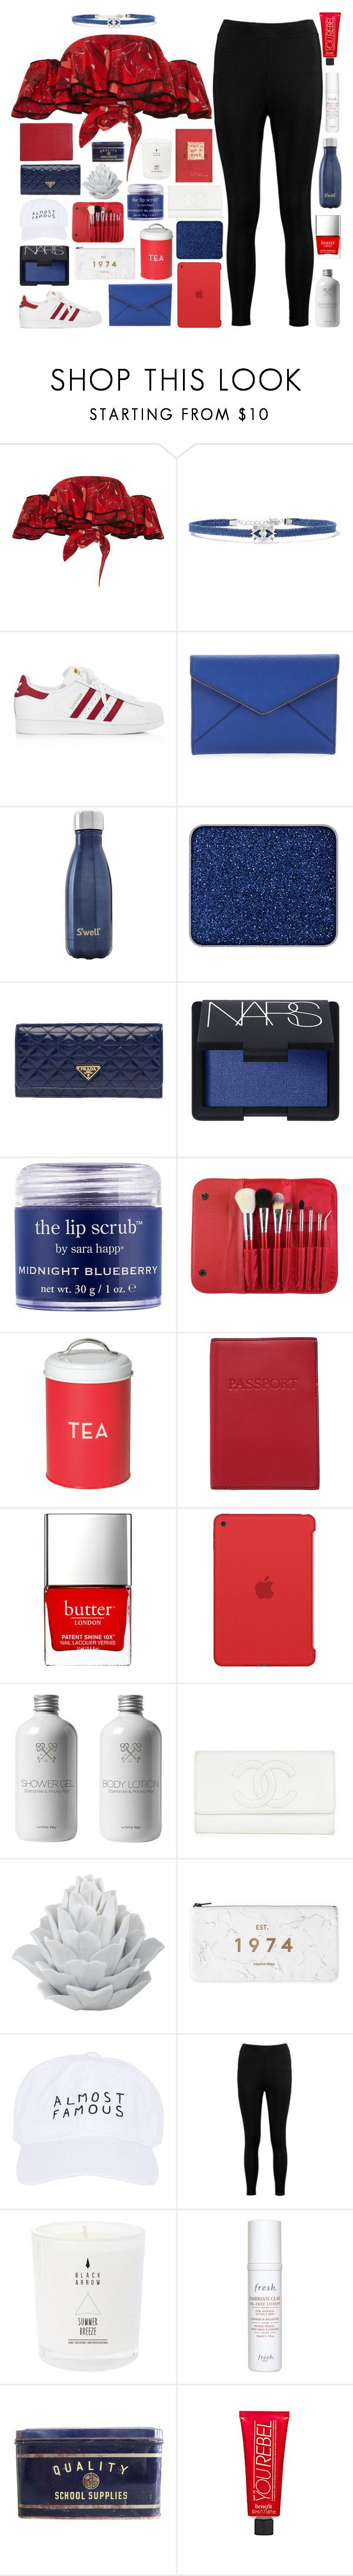 """""""You Light Me Up Inside Like The Fourth Of July"""" by just-a-reject-x ❤ liked on Polyvore featuring Johanna Ortiz, Noir Jewelry, adidas, Rebecca Minkoff, S'well, shu uemura, Prada, NARS Cosmetics, Sara Happ and Morphe"""